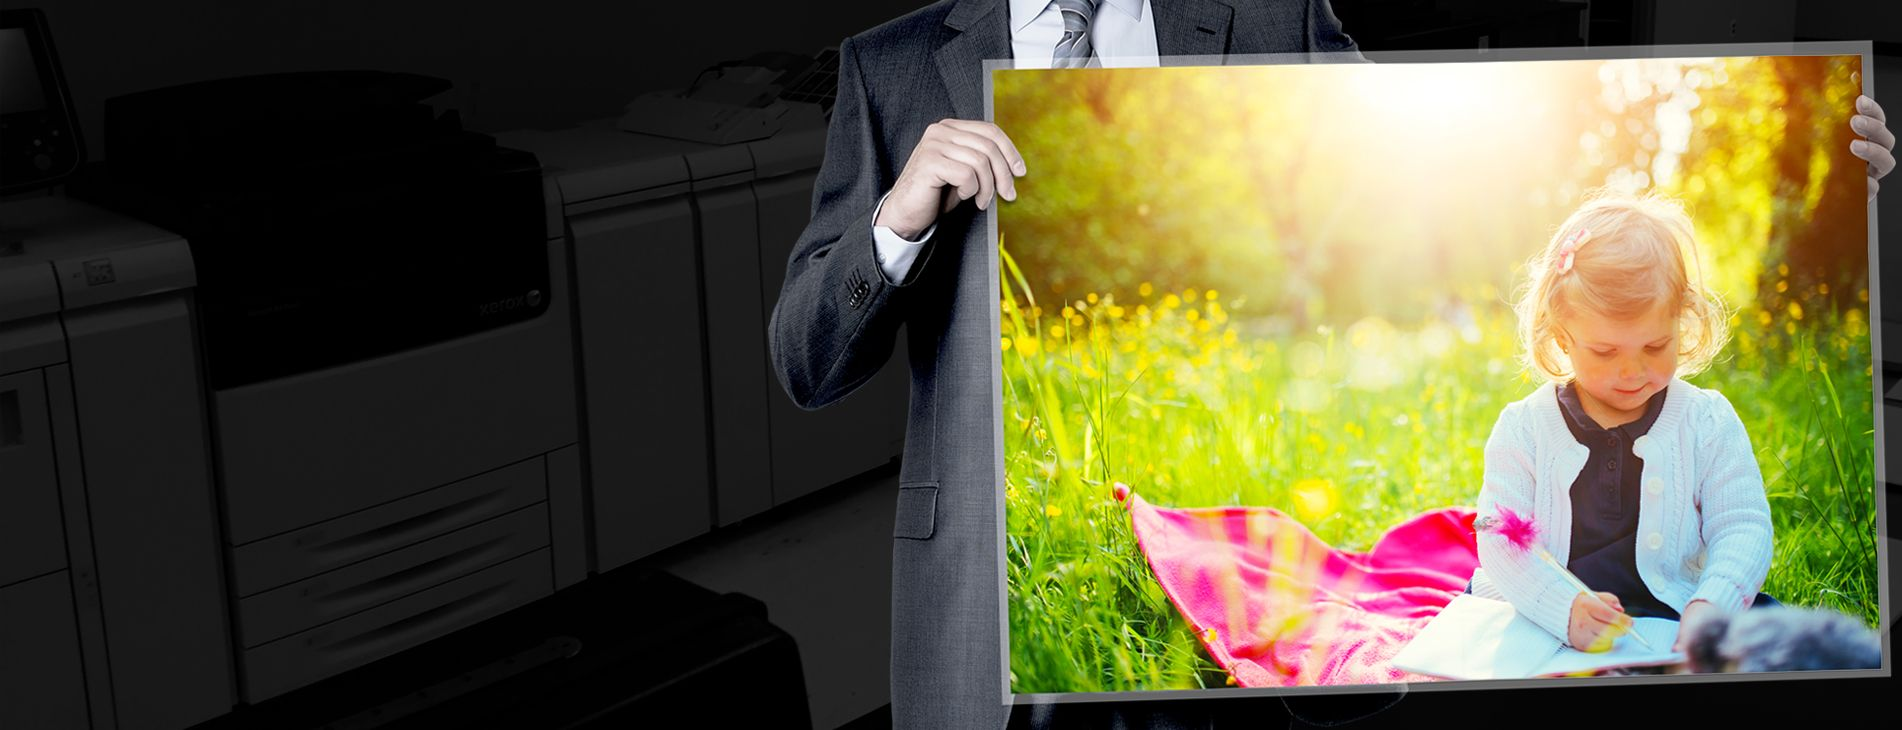 Make an impact with high quality prints.